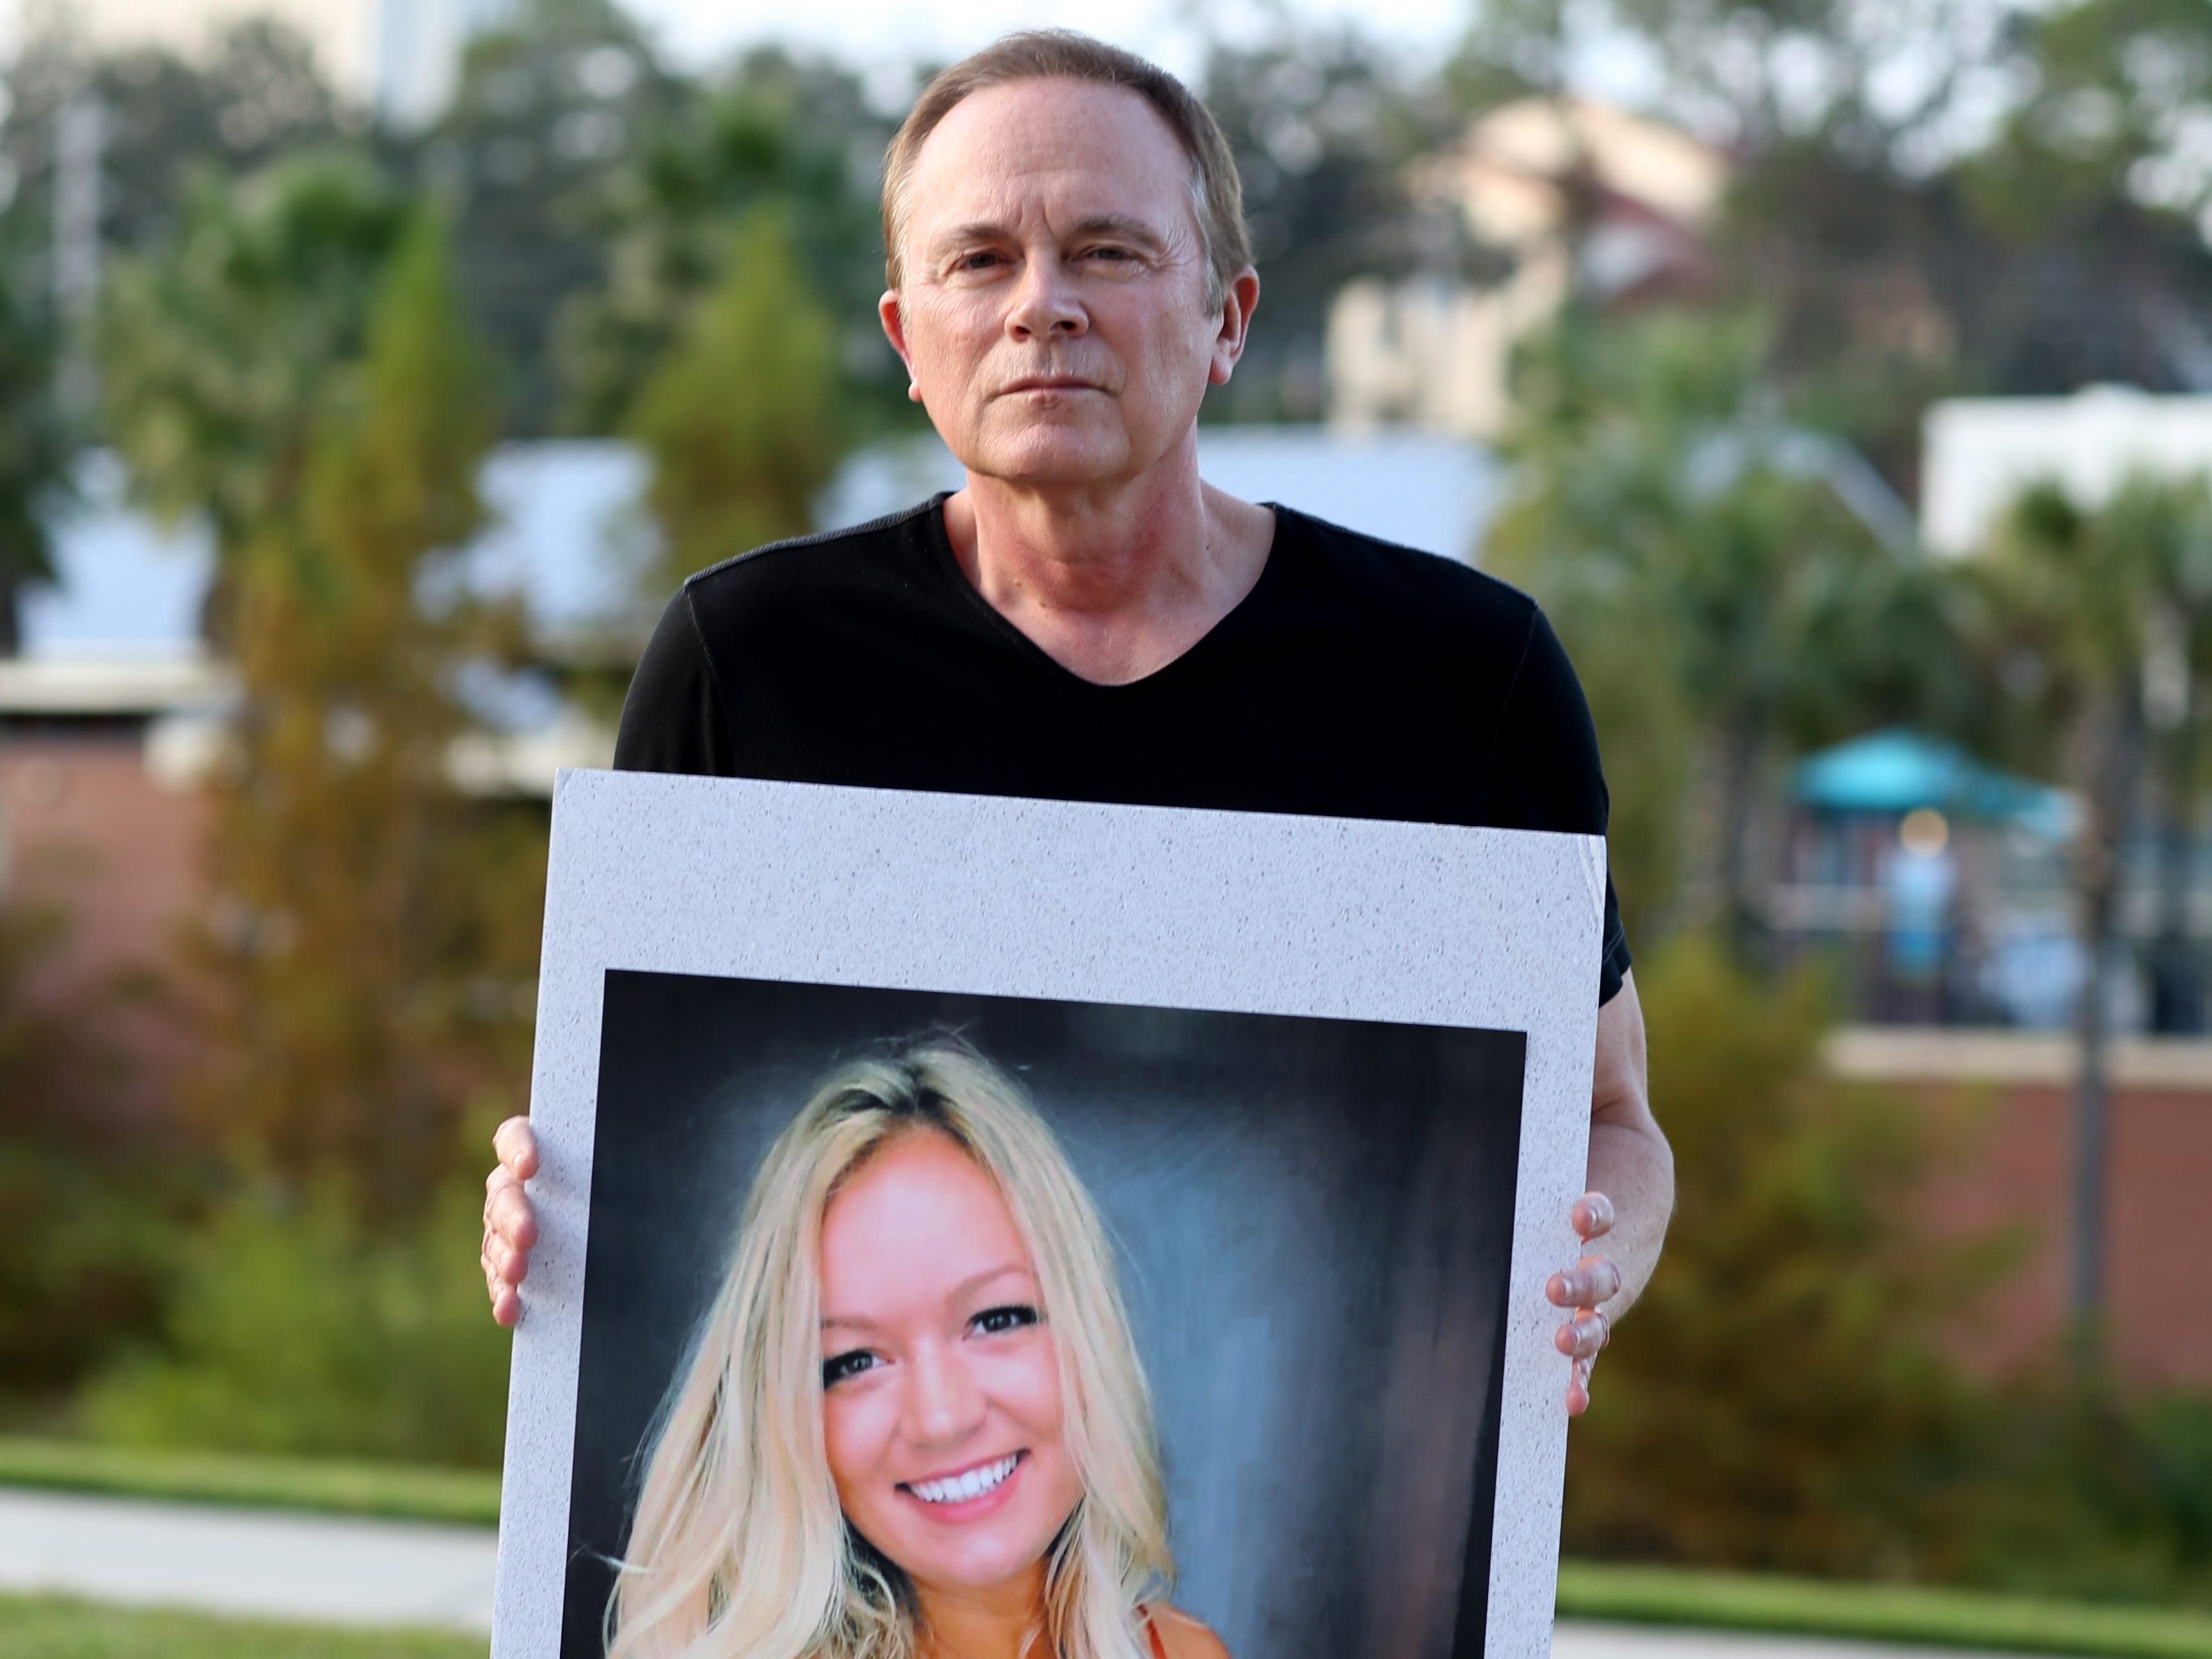 After Thousand Oaks, daughter's death in yoga studio shooting, 'time for silence is over'